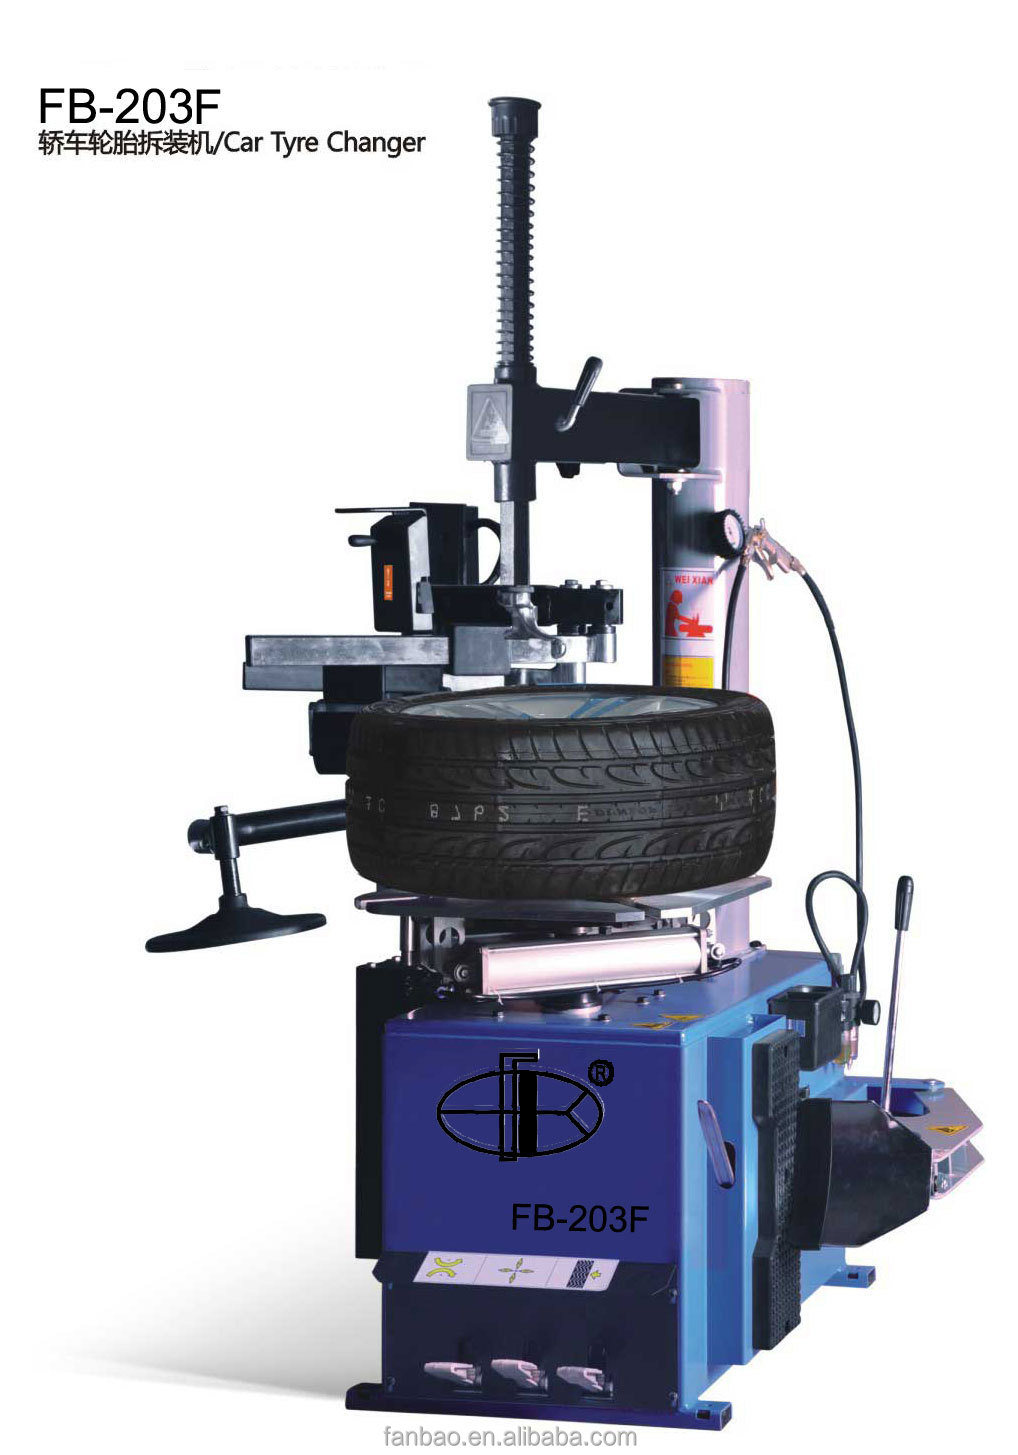 Car Tyre Changer Equipped with left aid arm,two pressing positions and tire support plate to dismount flat and large tire.